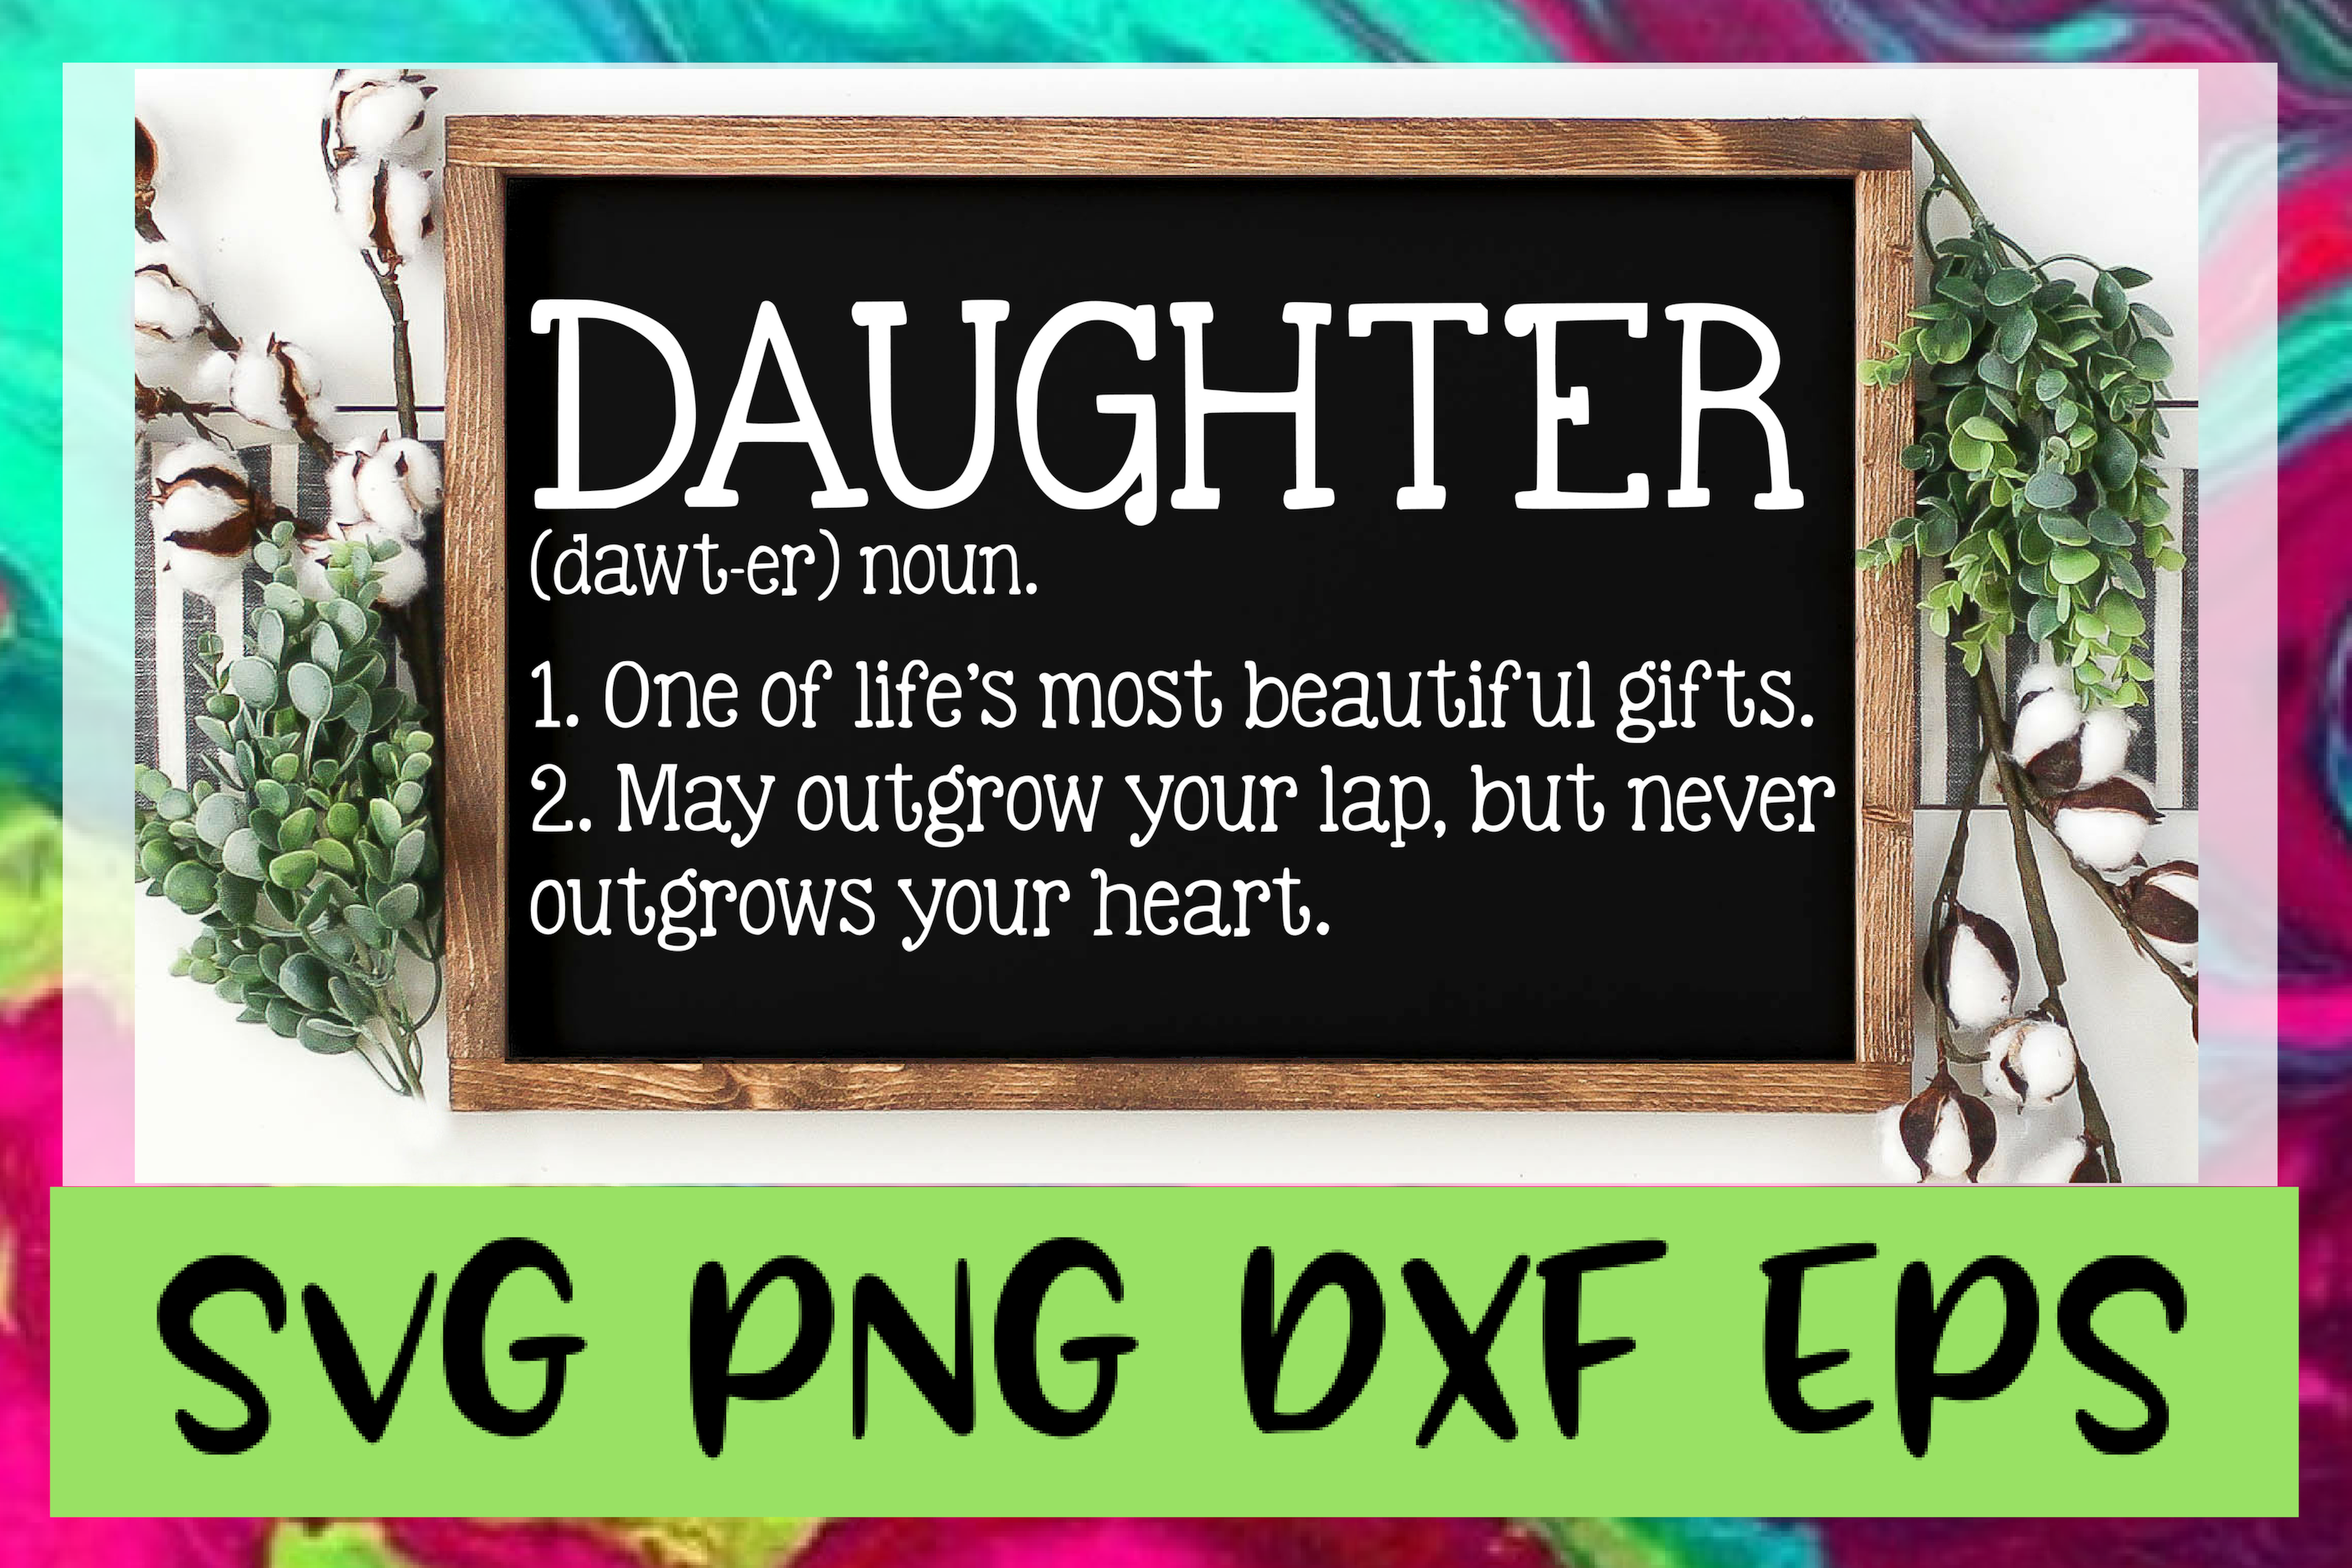 Daughter Quote Definition SVG PNG DXF & EPS Design Files example image 1